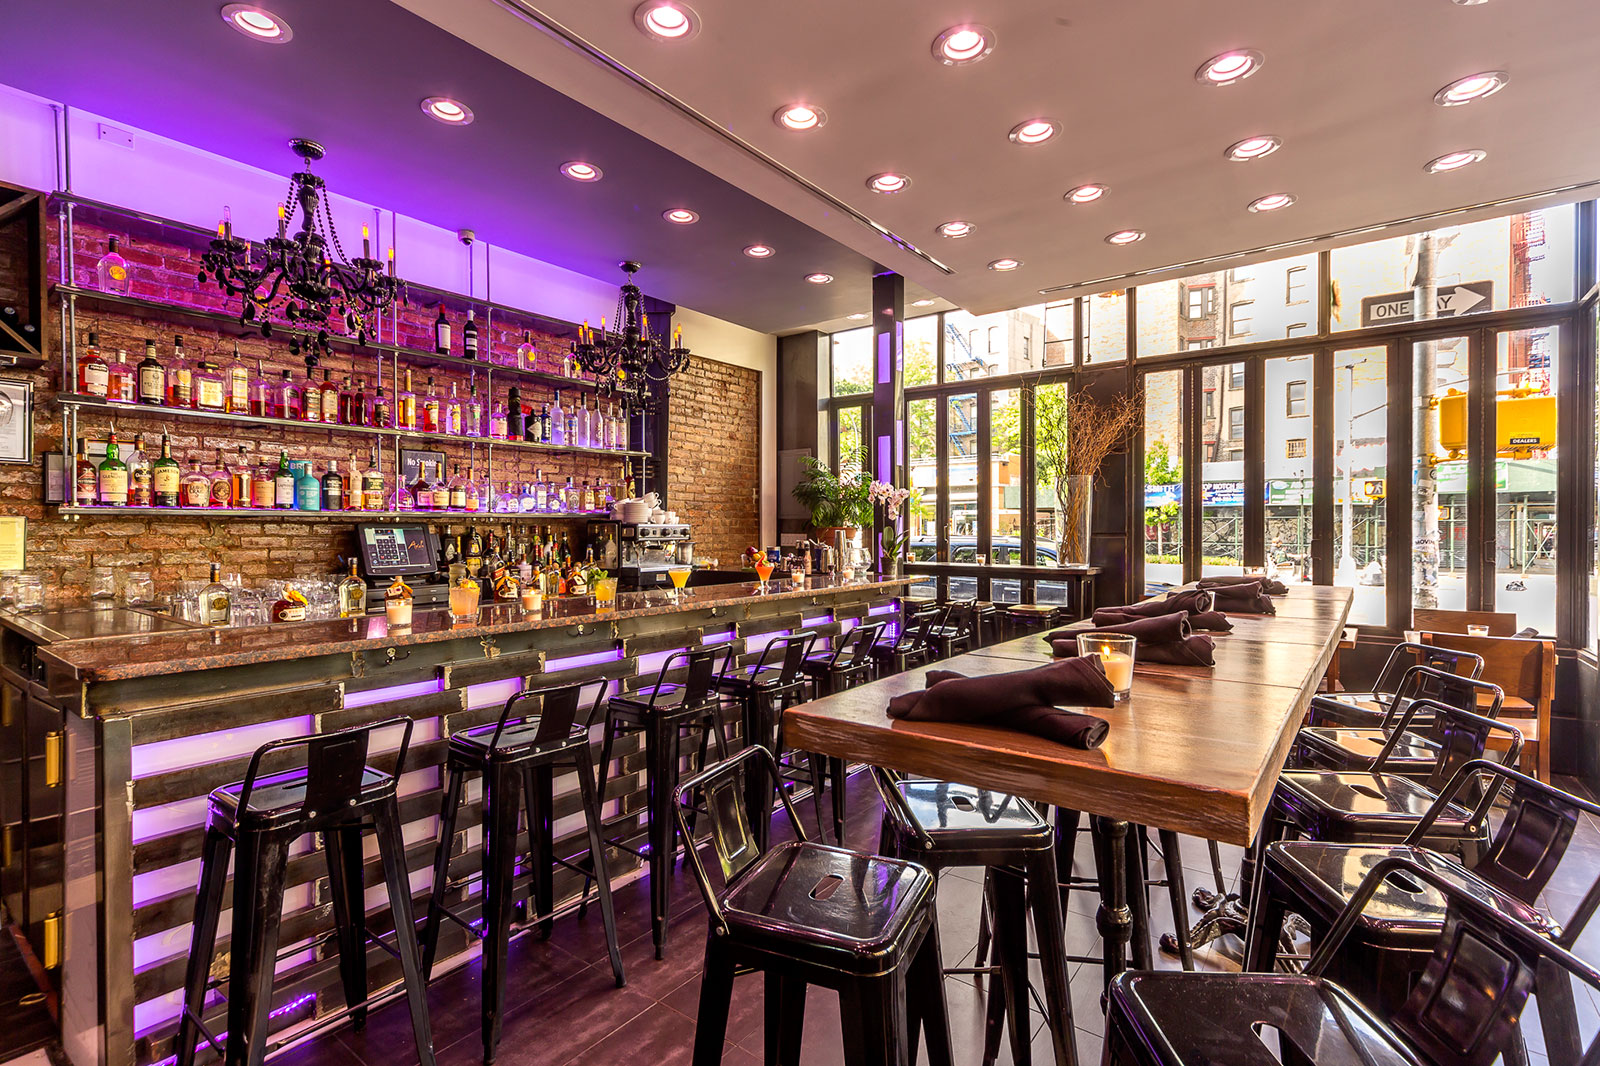 Main Space event space at Ariel's Latin Bistro in New York City, NYC, NY/NJ Area